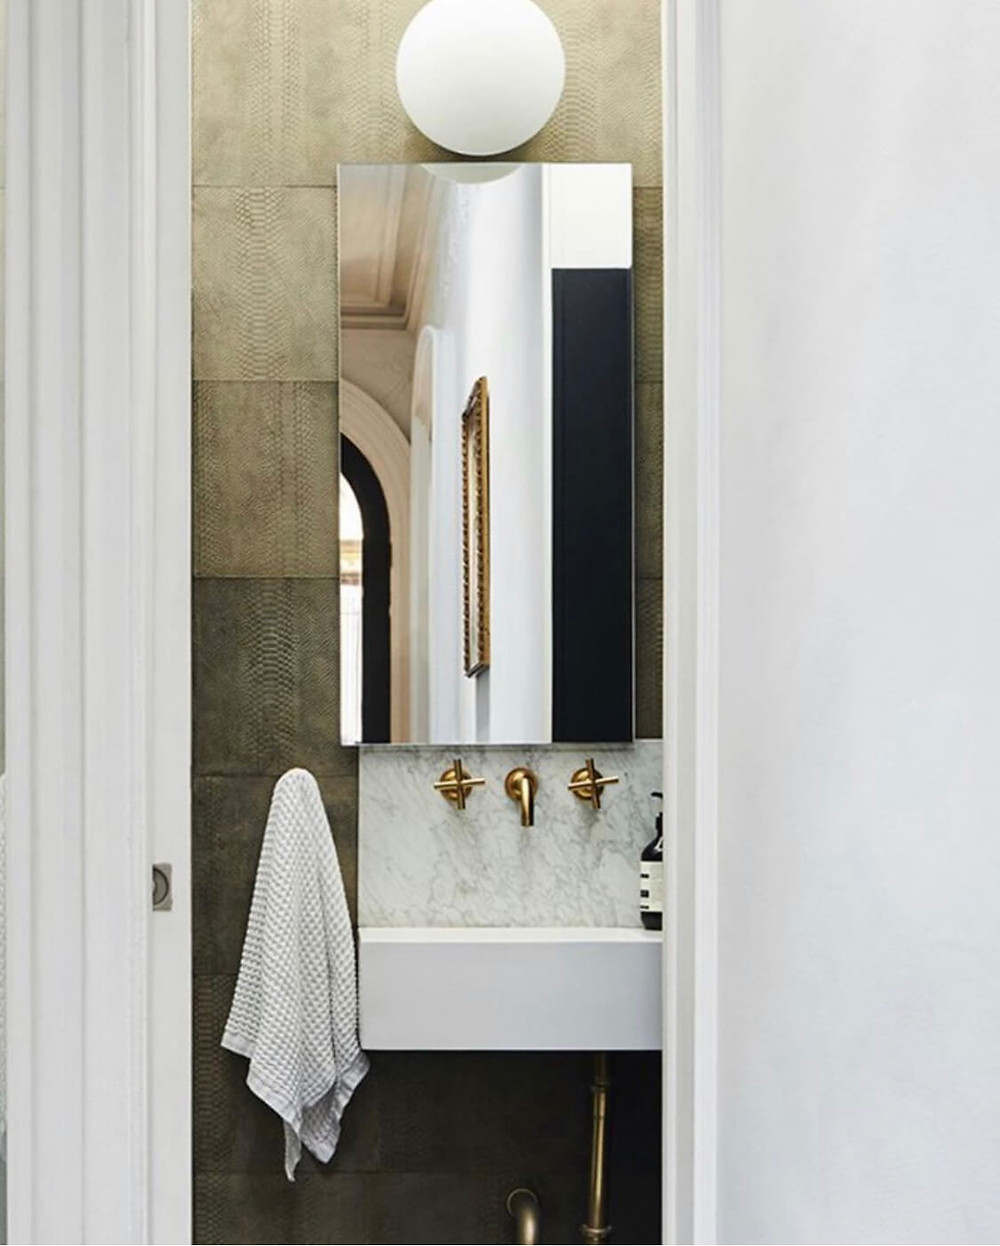 A powder room with walls adorned with textural taupe leather tiles. A round wall mounted globe sconce sits above an off centred rectangle frameless mirror. Below is a small marble backsplash with wall mounted brass tapware and a small white wall mounted ceramic sink with exposed brass pipe work. A white hand towel hangs directly left. In the mirror, reflects a hallway with a brass frame and black arched door with opulent crown mouldings.